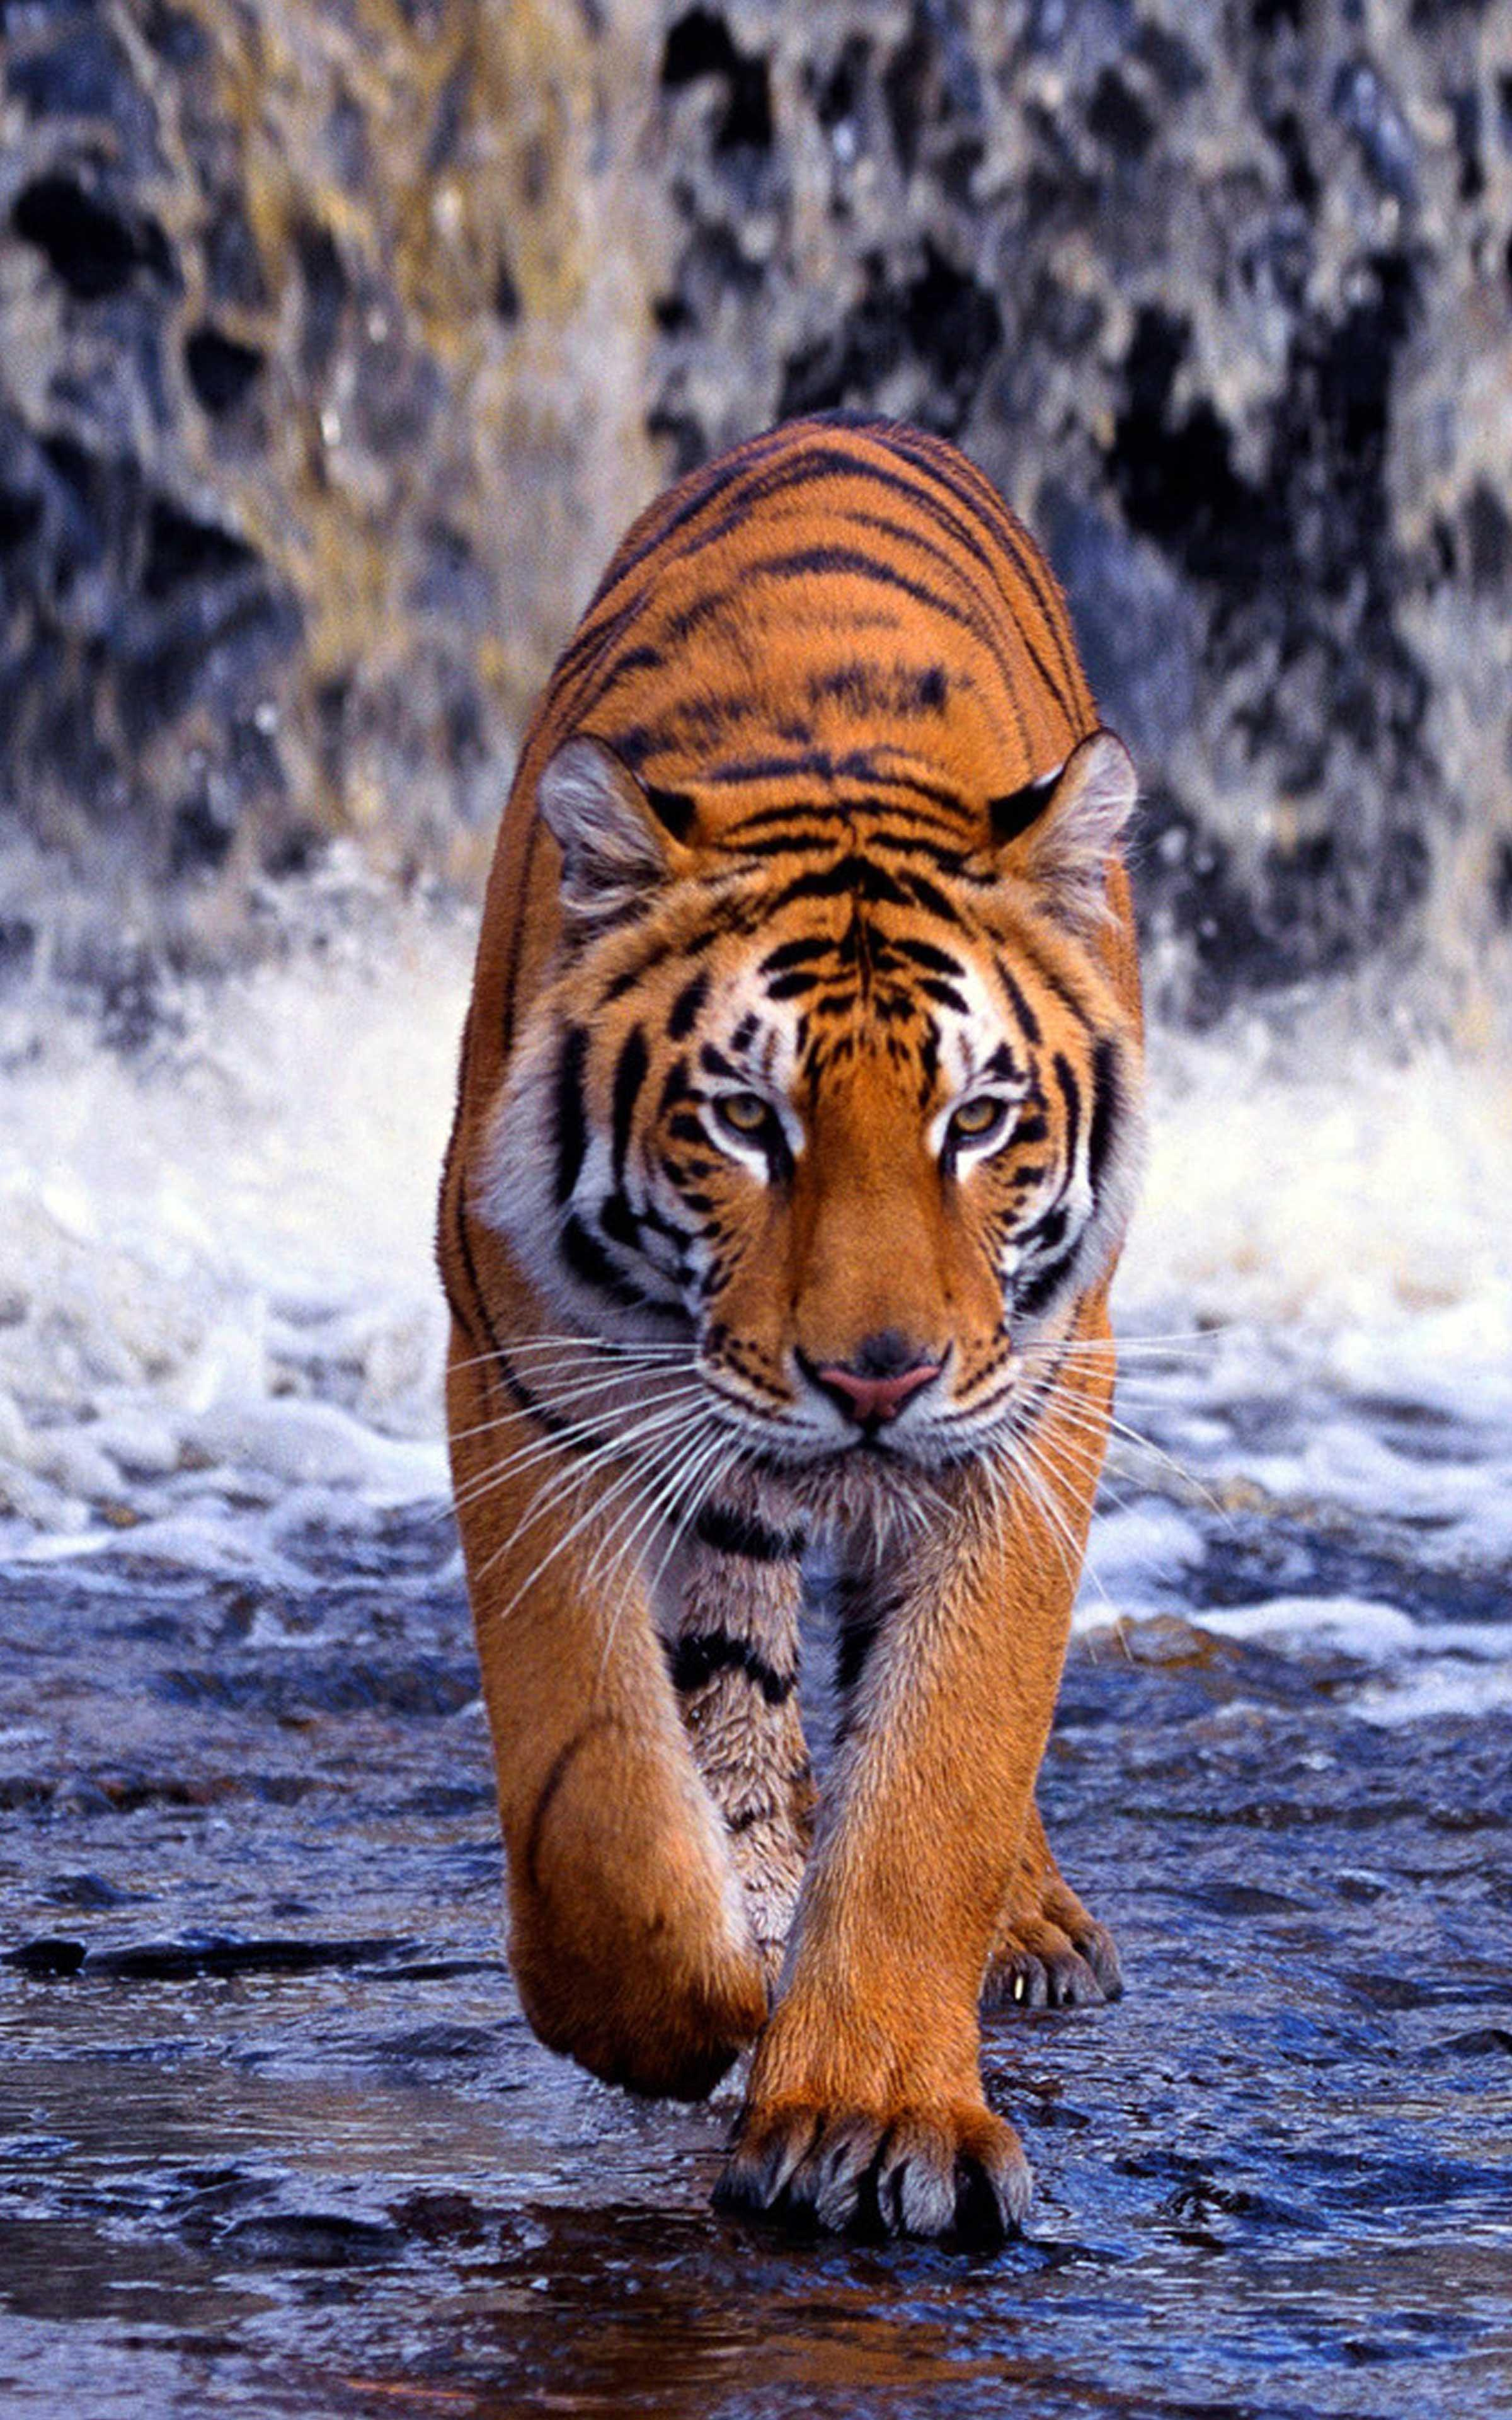 Tiger Wallpaper 4k - Best Cool Tiger Wallpapers for ...